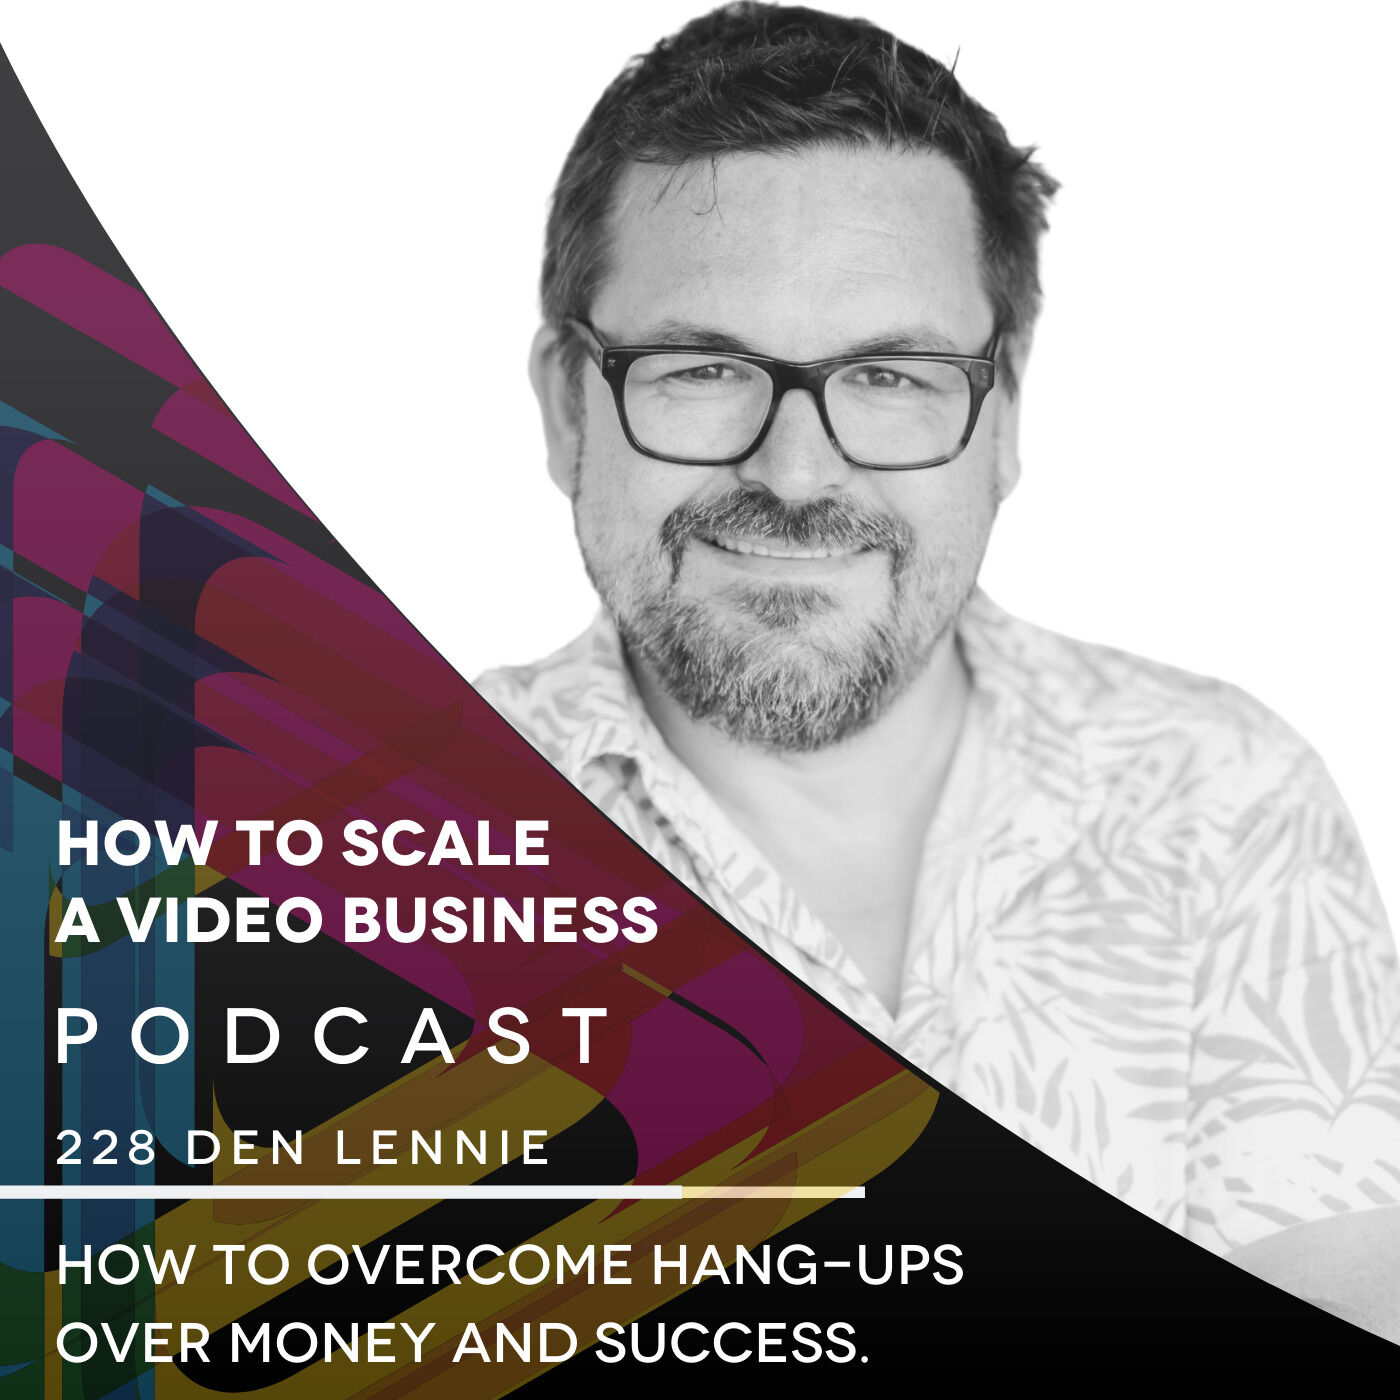 How to overcome hang-ups over money and success. EP #228 - Den Lennie